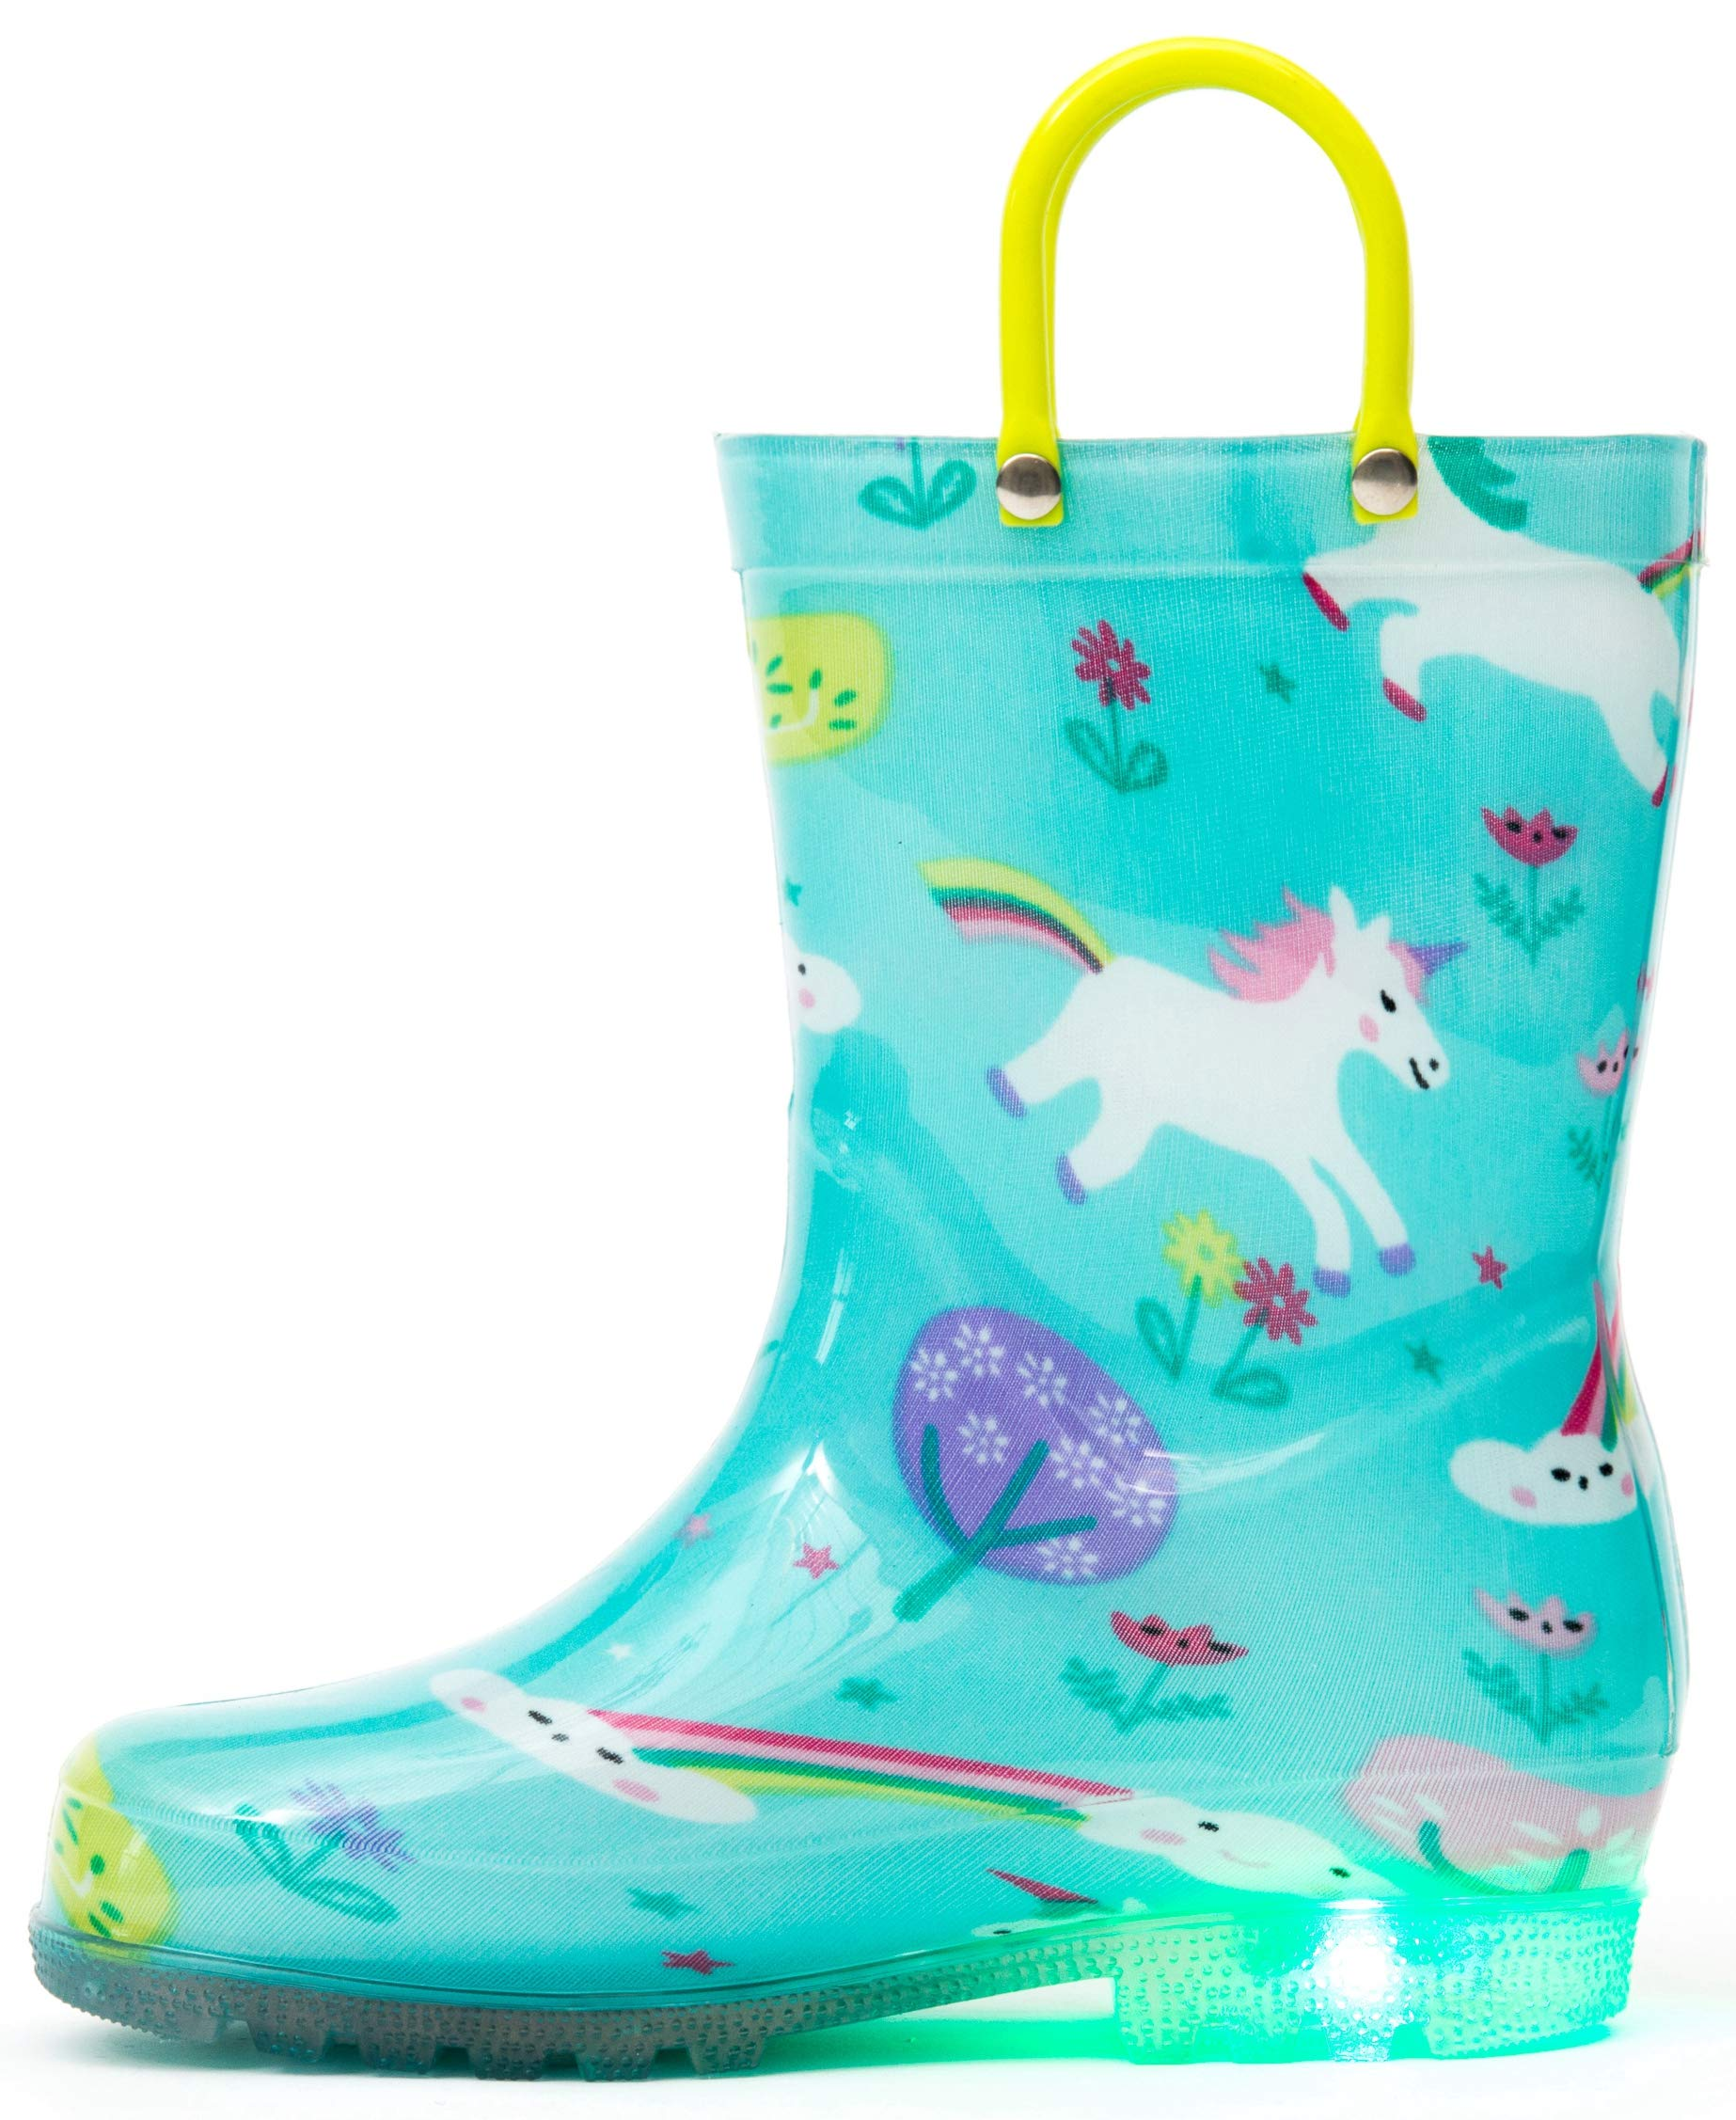 Outee Little Kids Toddler Boys Girls Light Up Rain Boots Printed Waterproof Shoes Lightweight Cute Green Unicorn with Easy-On Handles and Insole (Size 11,Green)